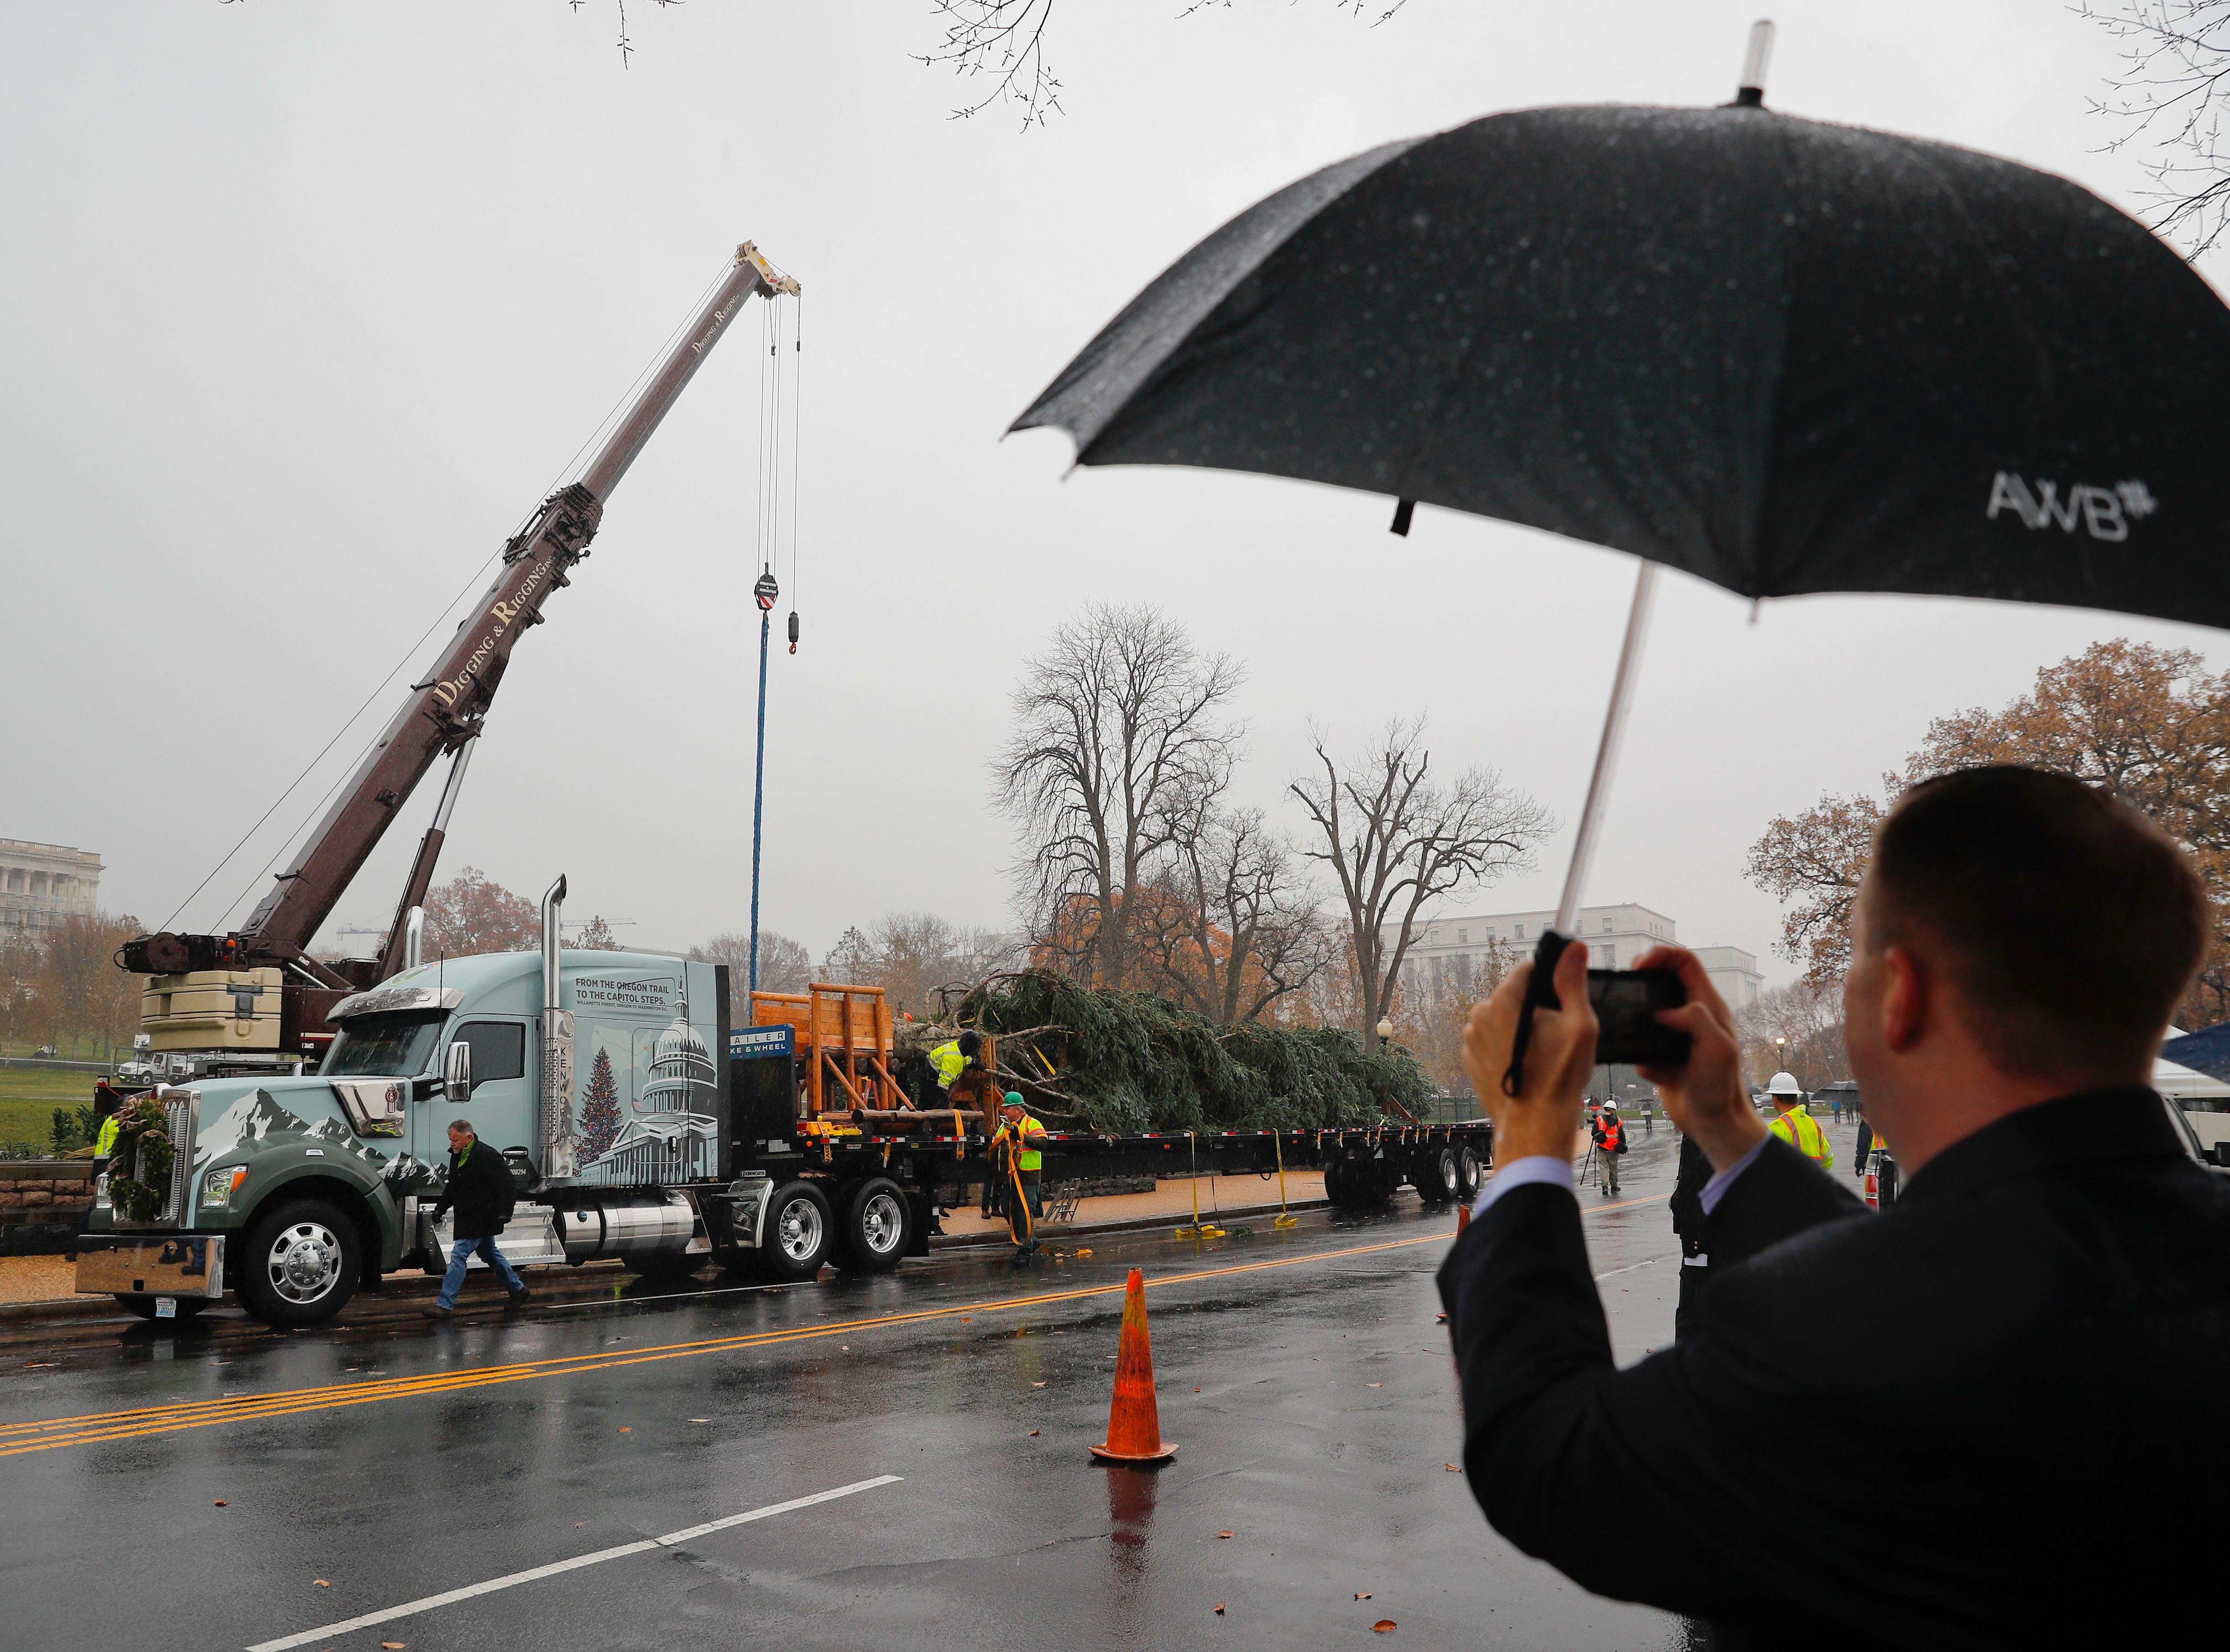 A man takes a picture of the arrival of the 2018 U.S. Capitol Christmas Tree to the West Lawn of the U.S. Capitol Building in Washington, Monday, Nov. 26, 2018, from Willamette National Forest in Oregon.